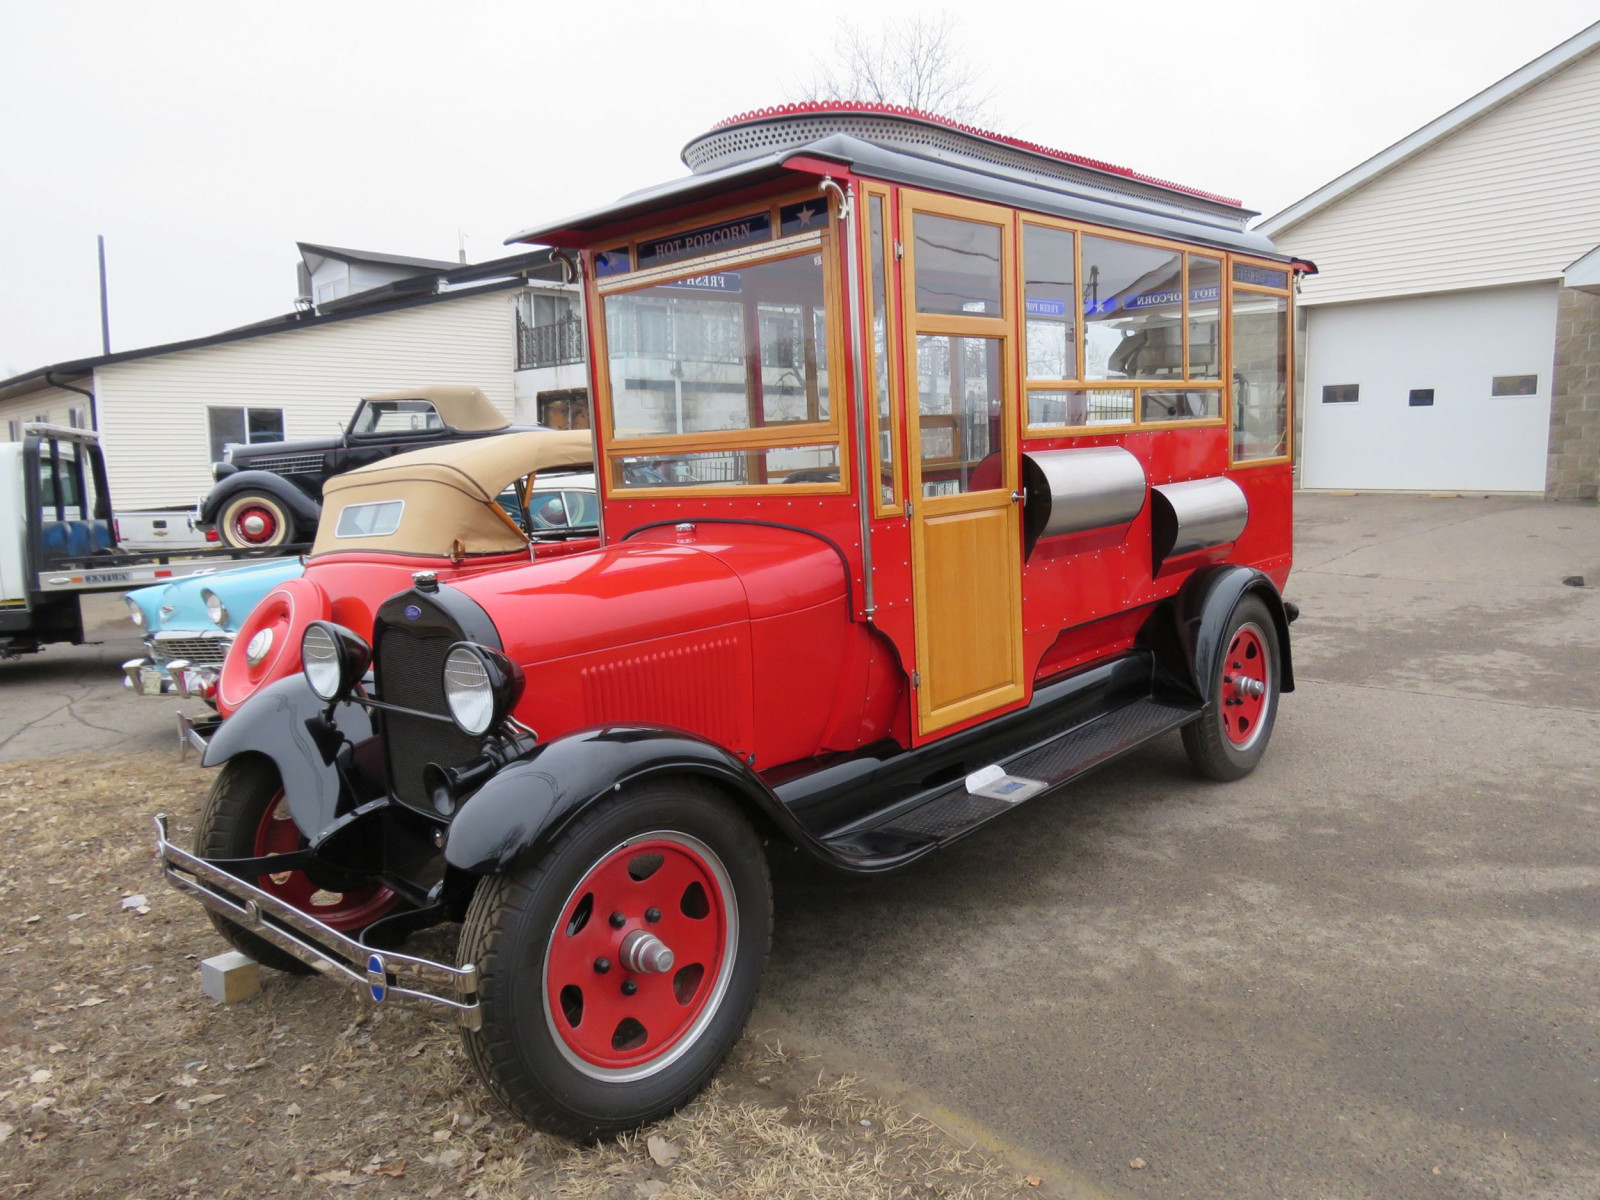 1928 Ford Model AA Popcorn Truck - Image 6